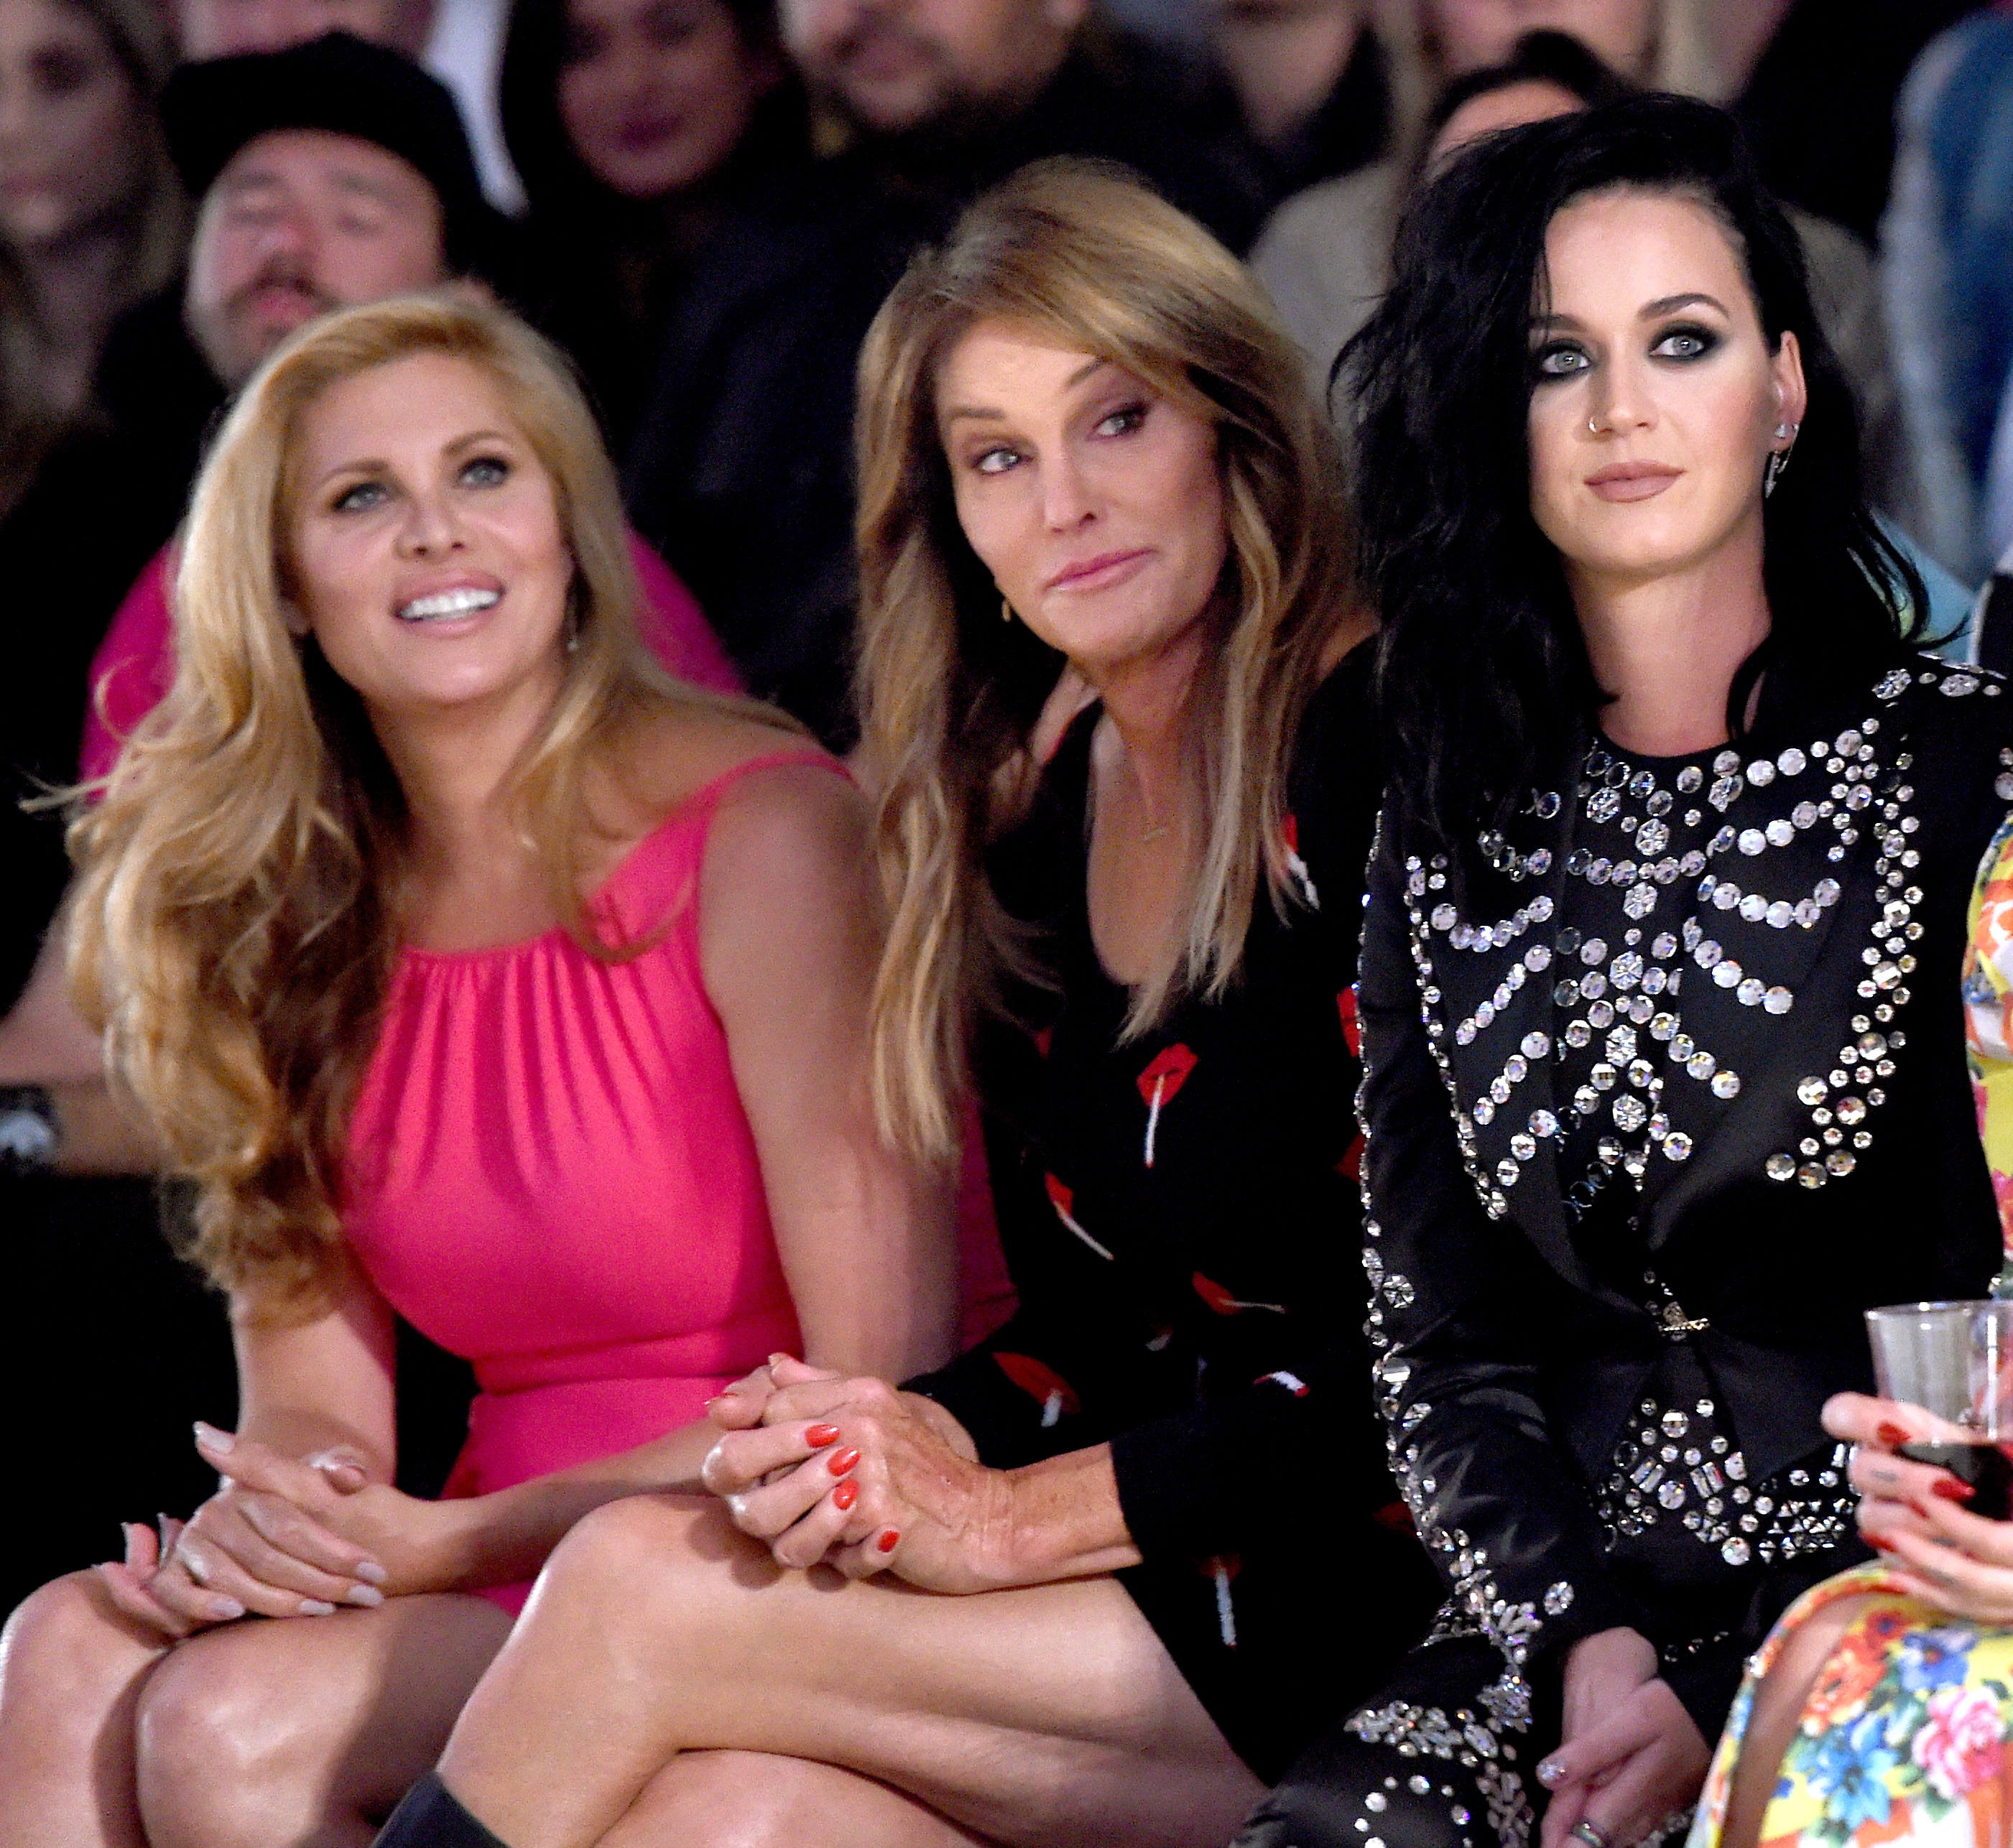 Katy Perry & Caitlyn Jenner at the Made LA: Moschi